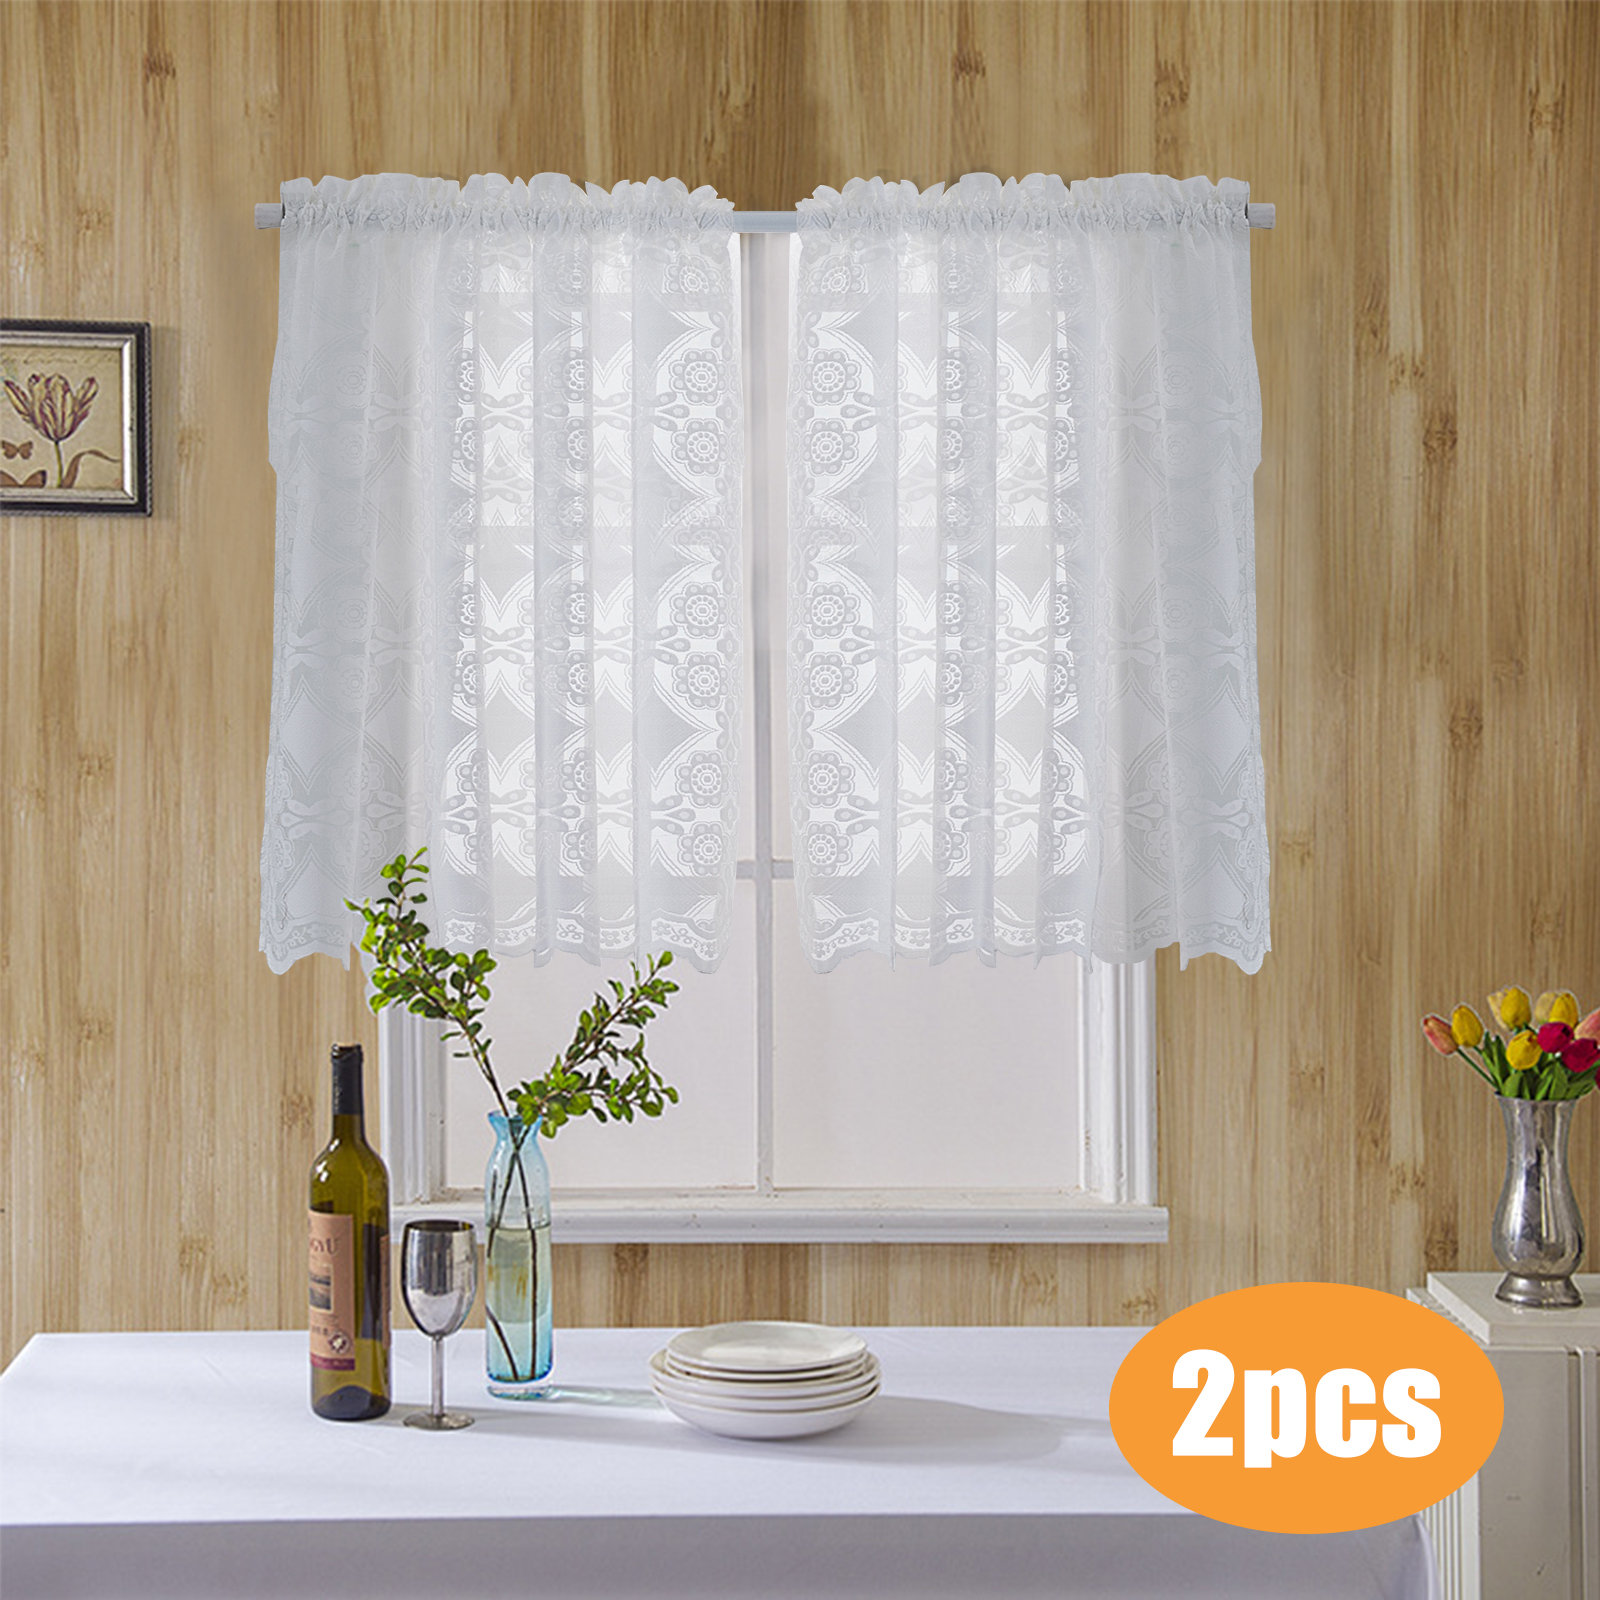 window curtain checked sheer voile kitchen curtain